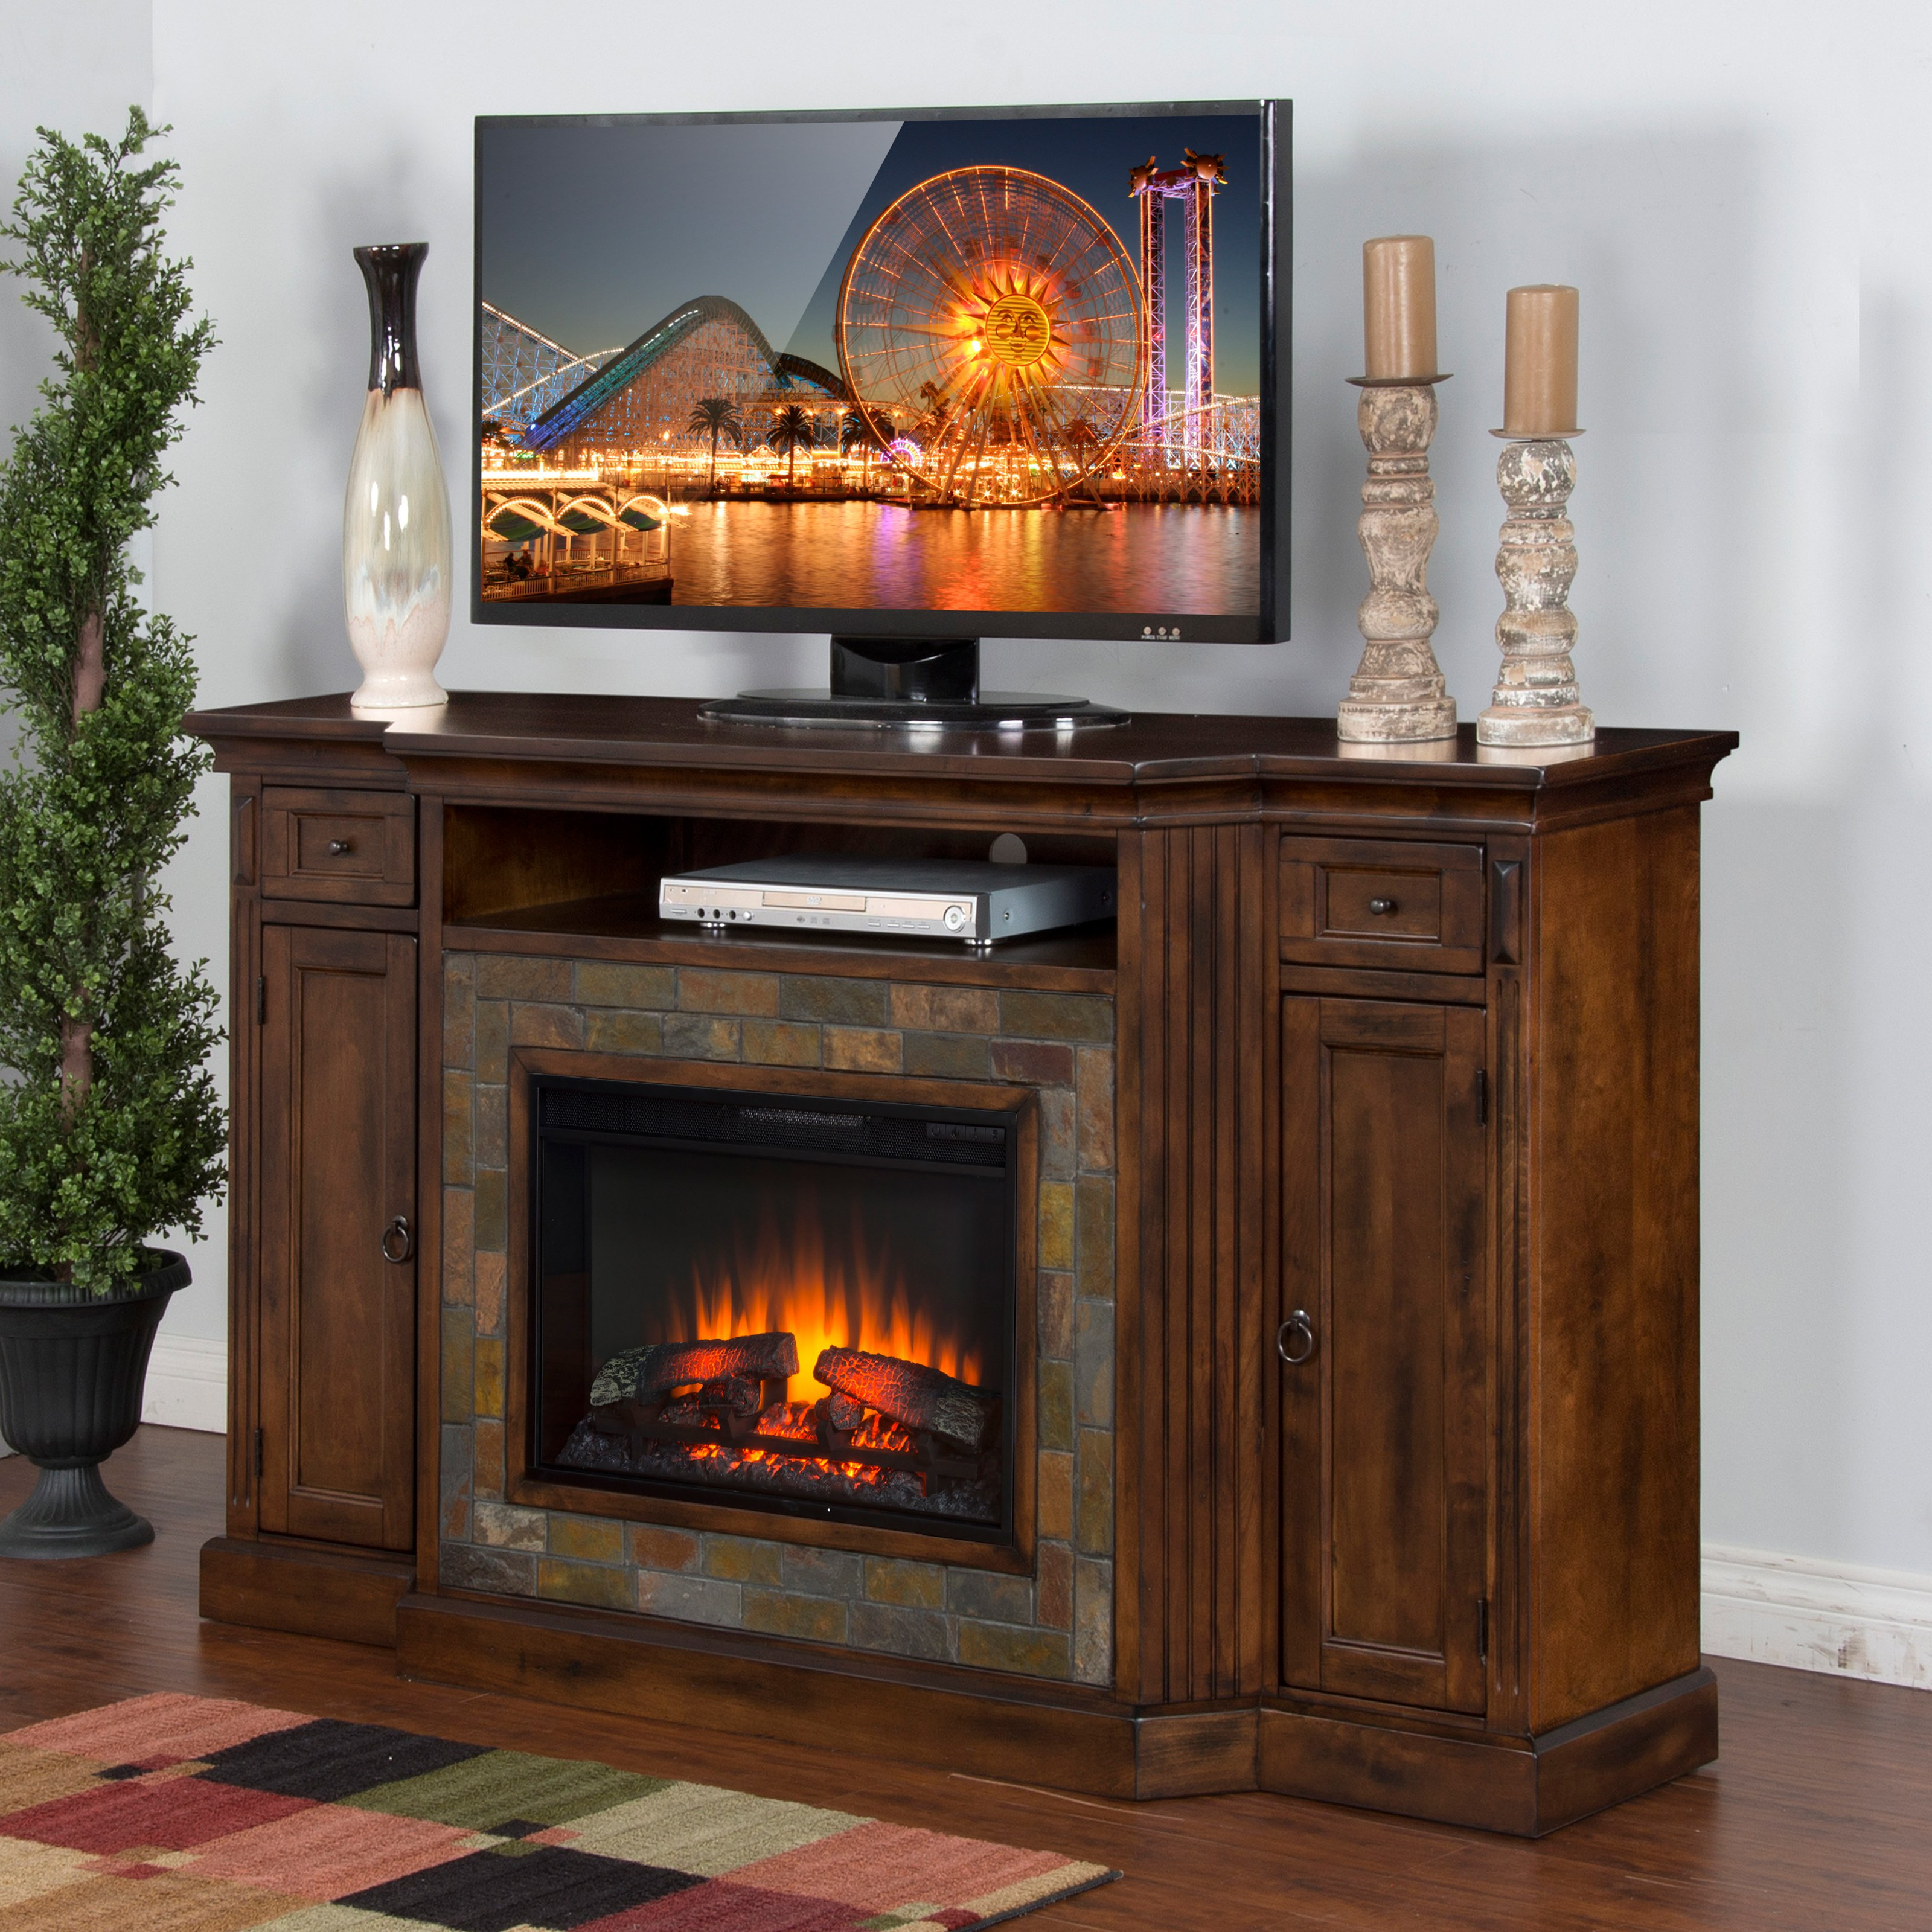 Sunny Designs Santa Fe 72 in. Electric Fireplace TV Console